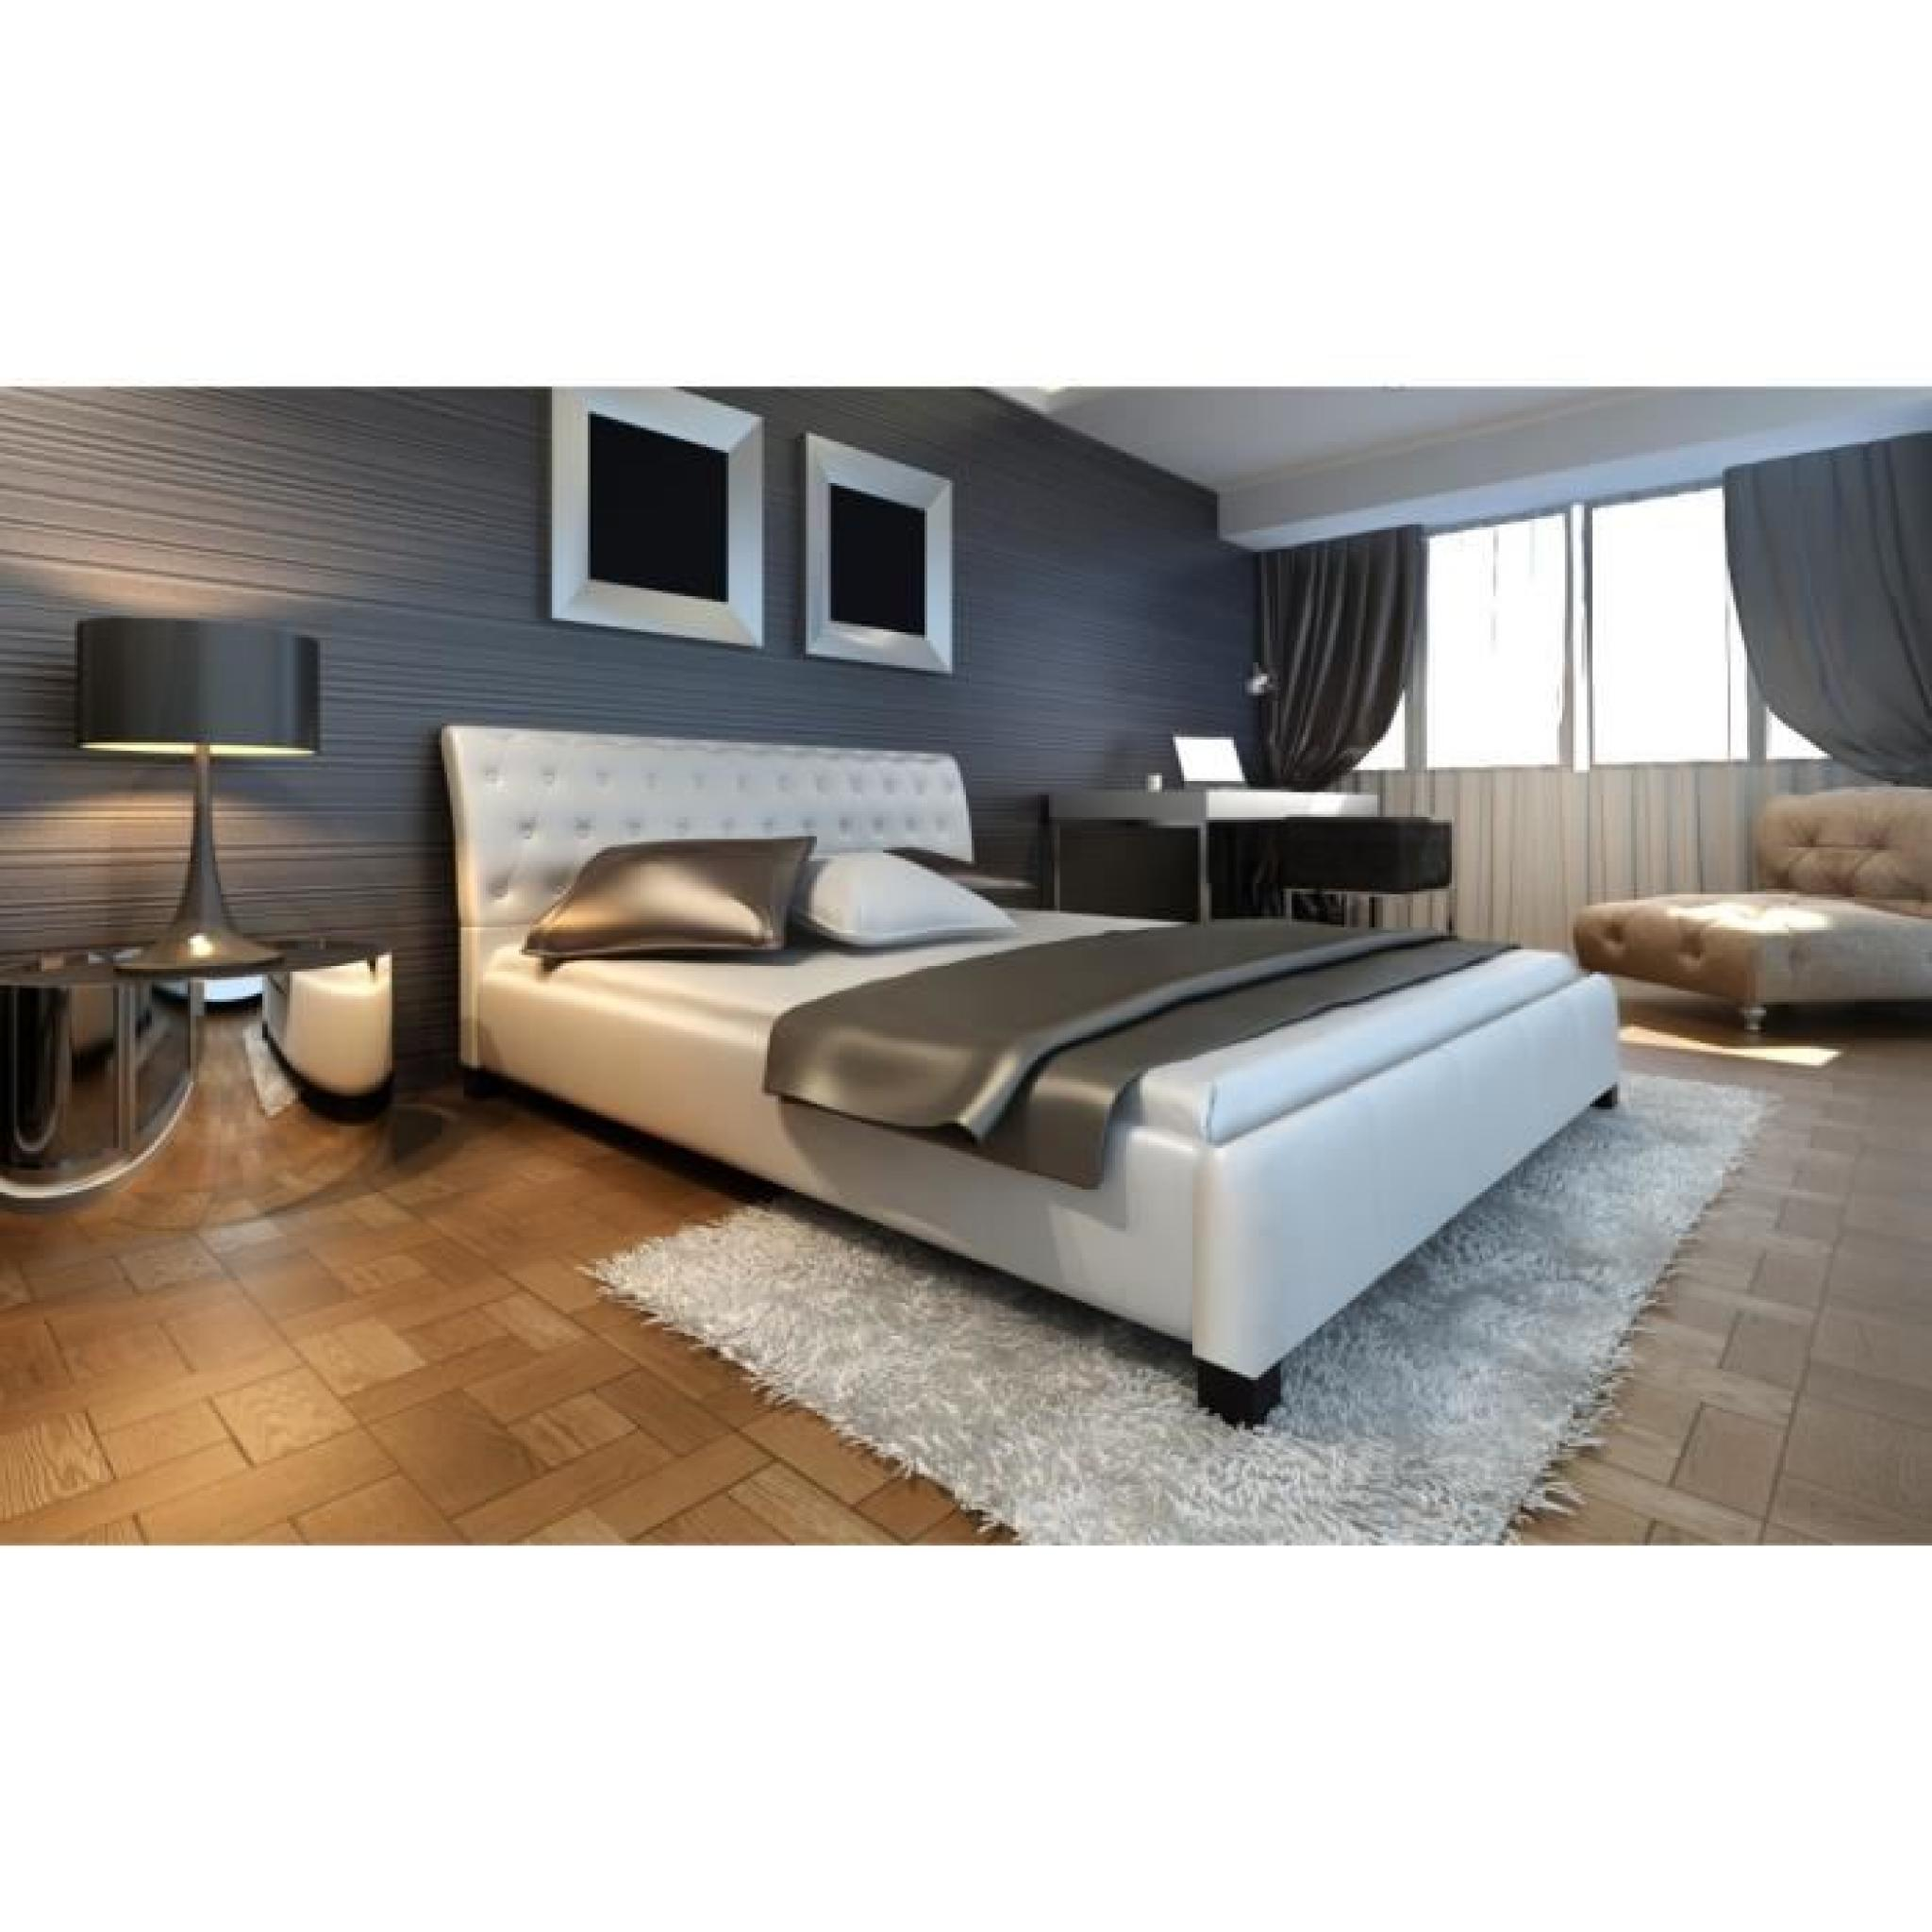 lit en cuir 140 200 cm blanc moderne lit double achat vente lit pas cher couleur et. Black Bedroom Furniture Sets. Home Design Ideas